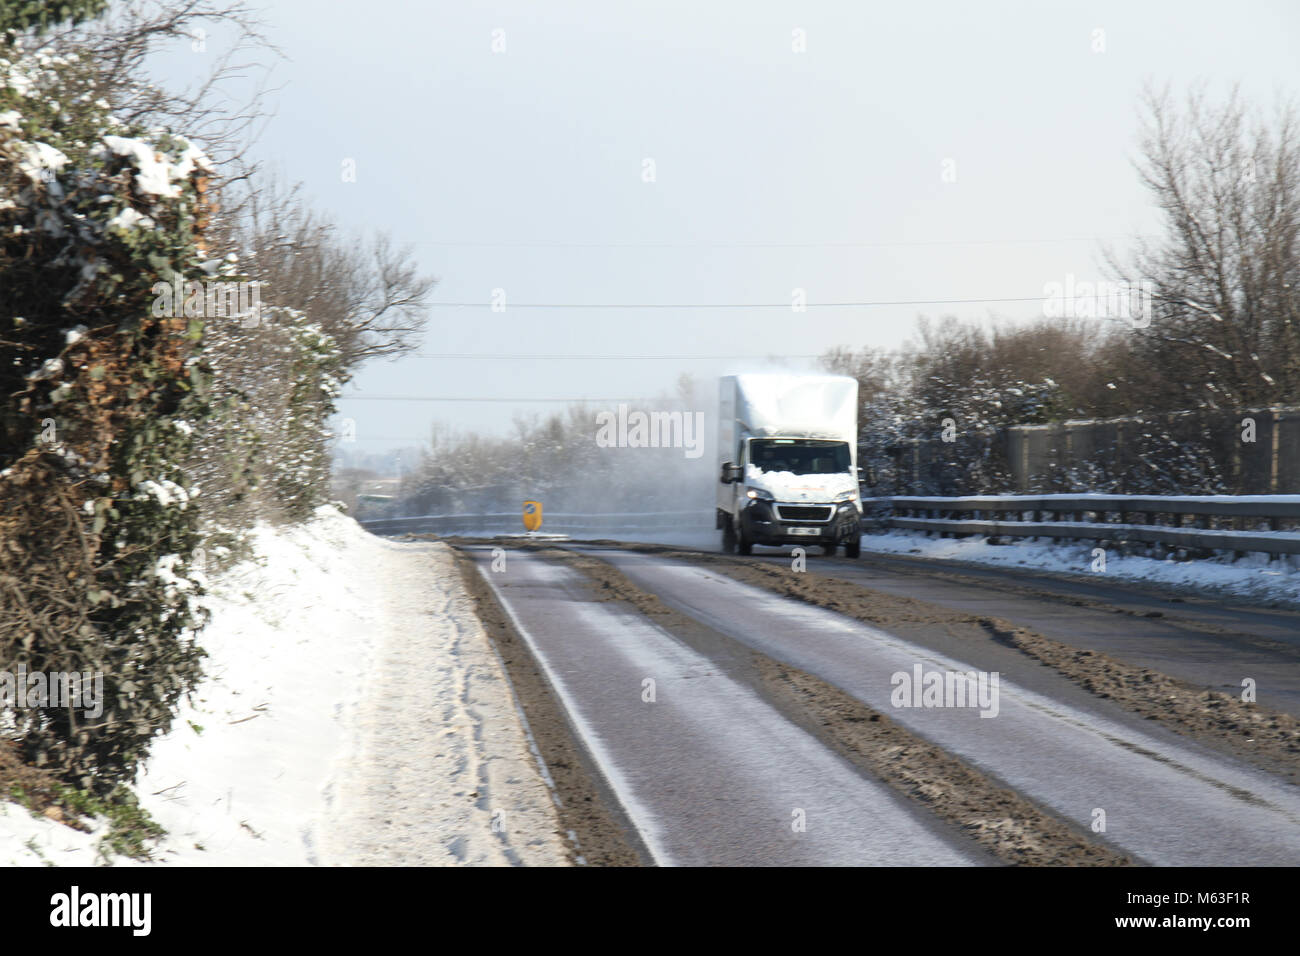 Purfleet, UK - February 28: Motorist and pedestrians commute on 28 February morning following a snowstorm that covered - Stock Image